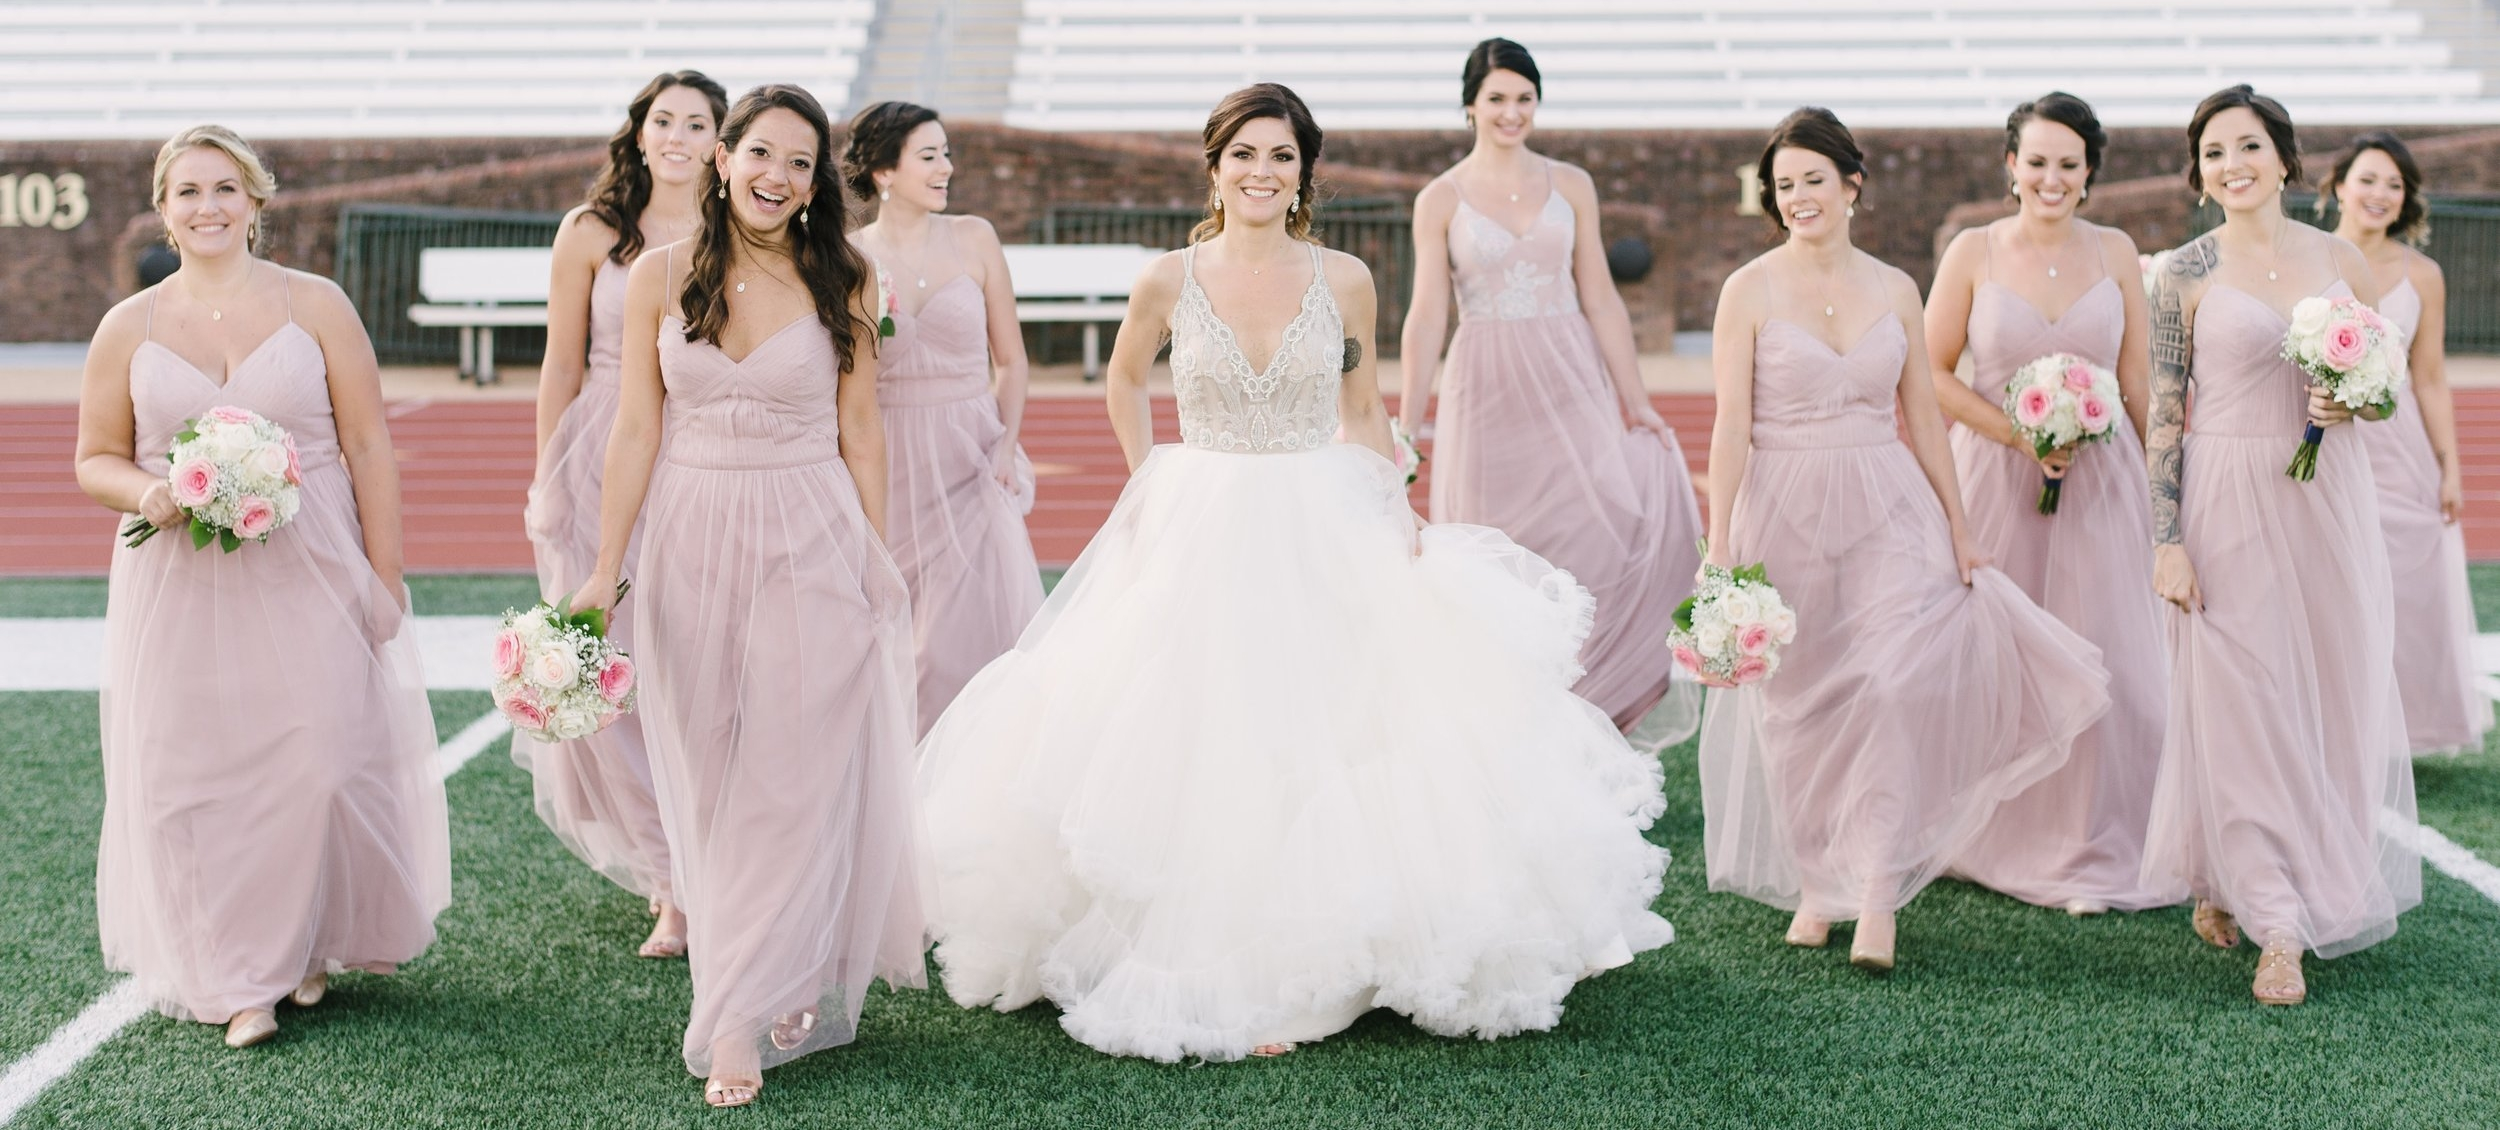 bridalparty-wedding-sarah-street-photography-174.jpg